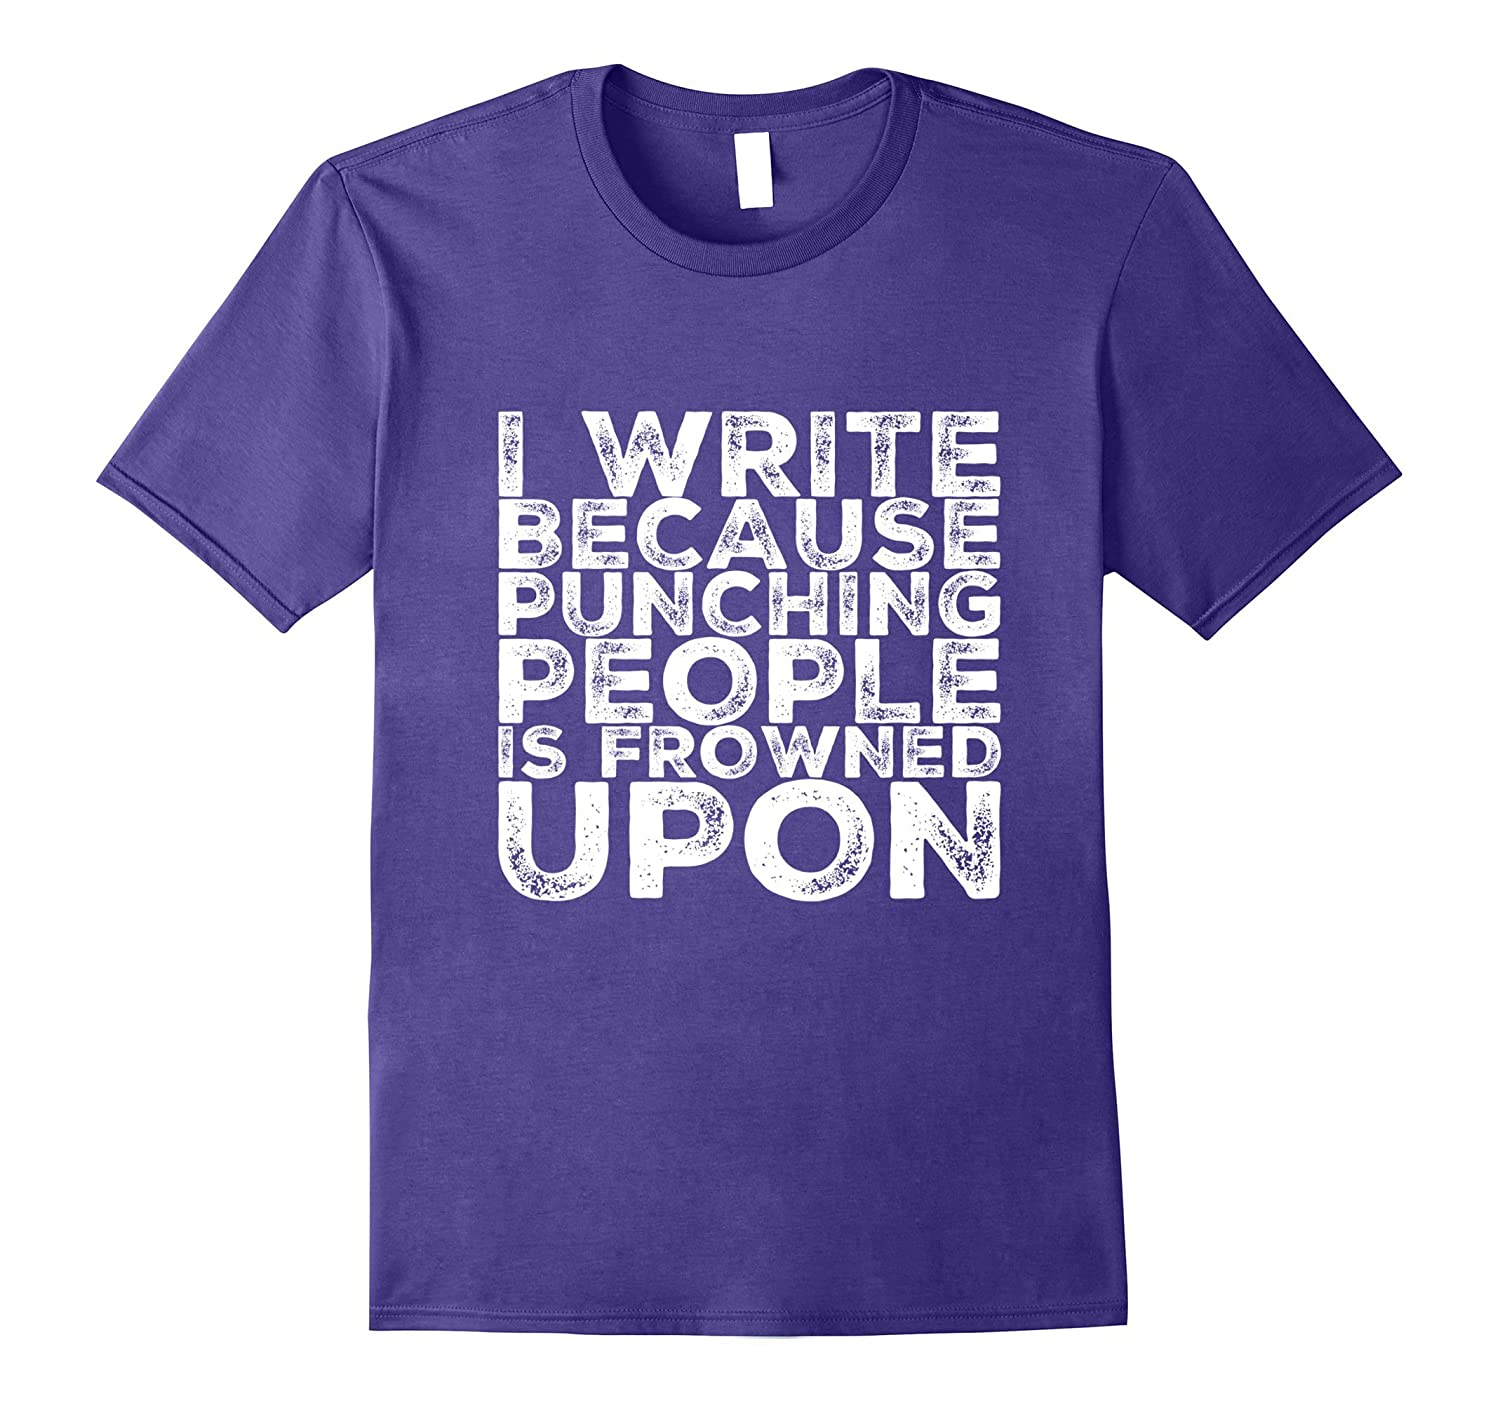 Author Poet Writing T Shirt for Women Men and Kids-TH